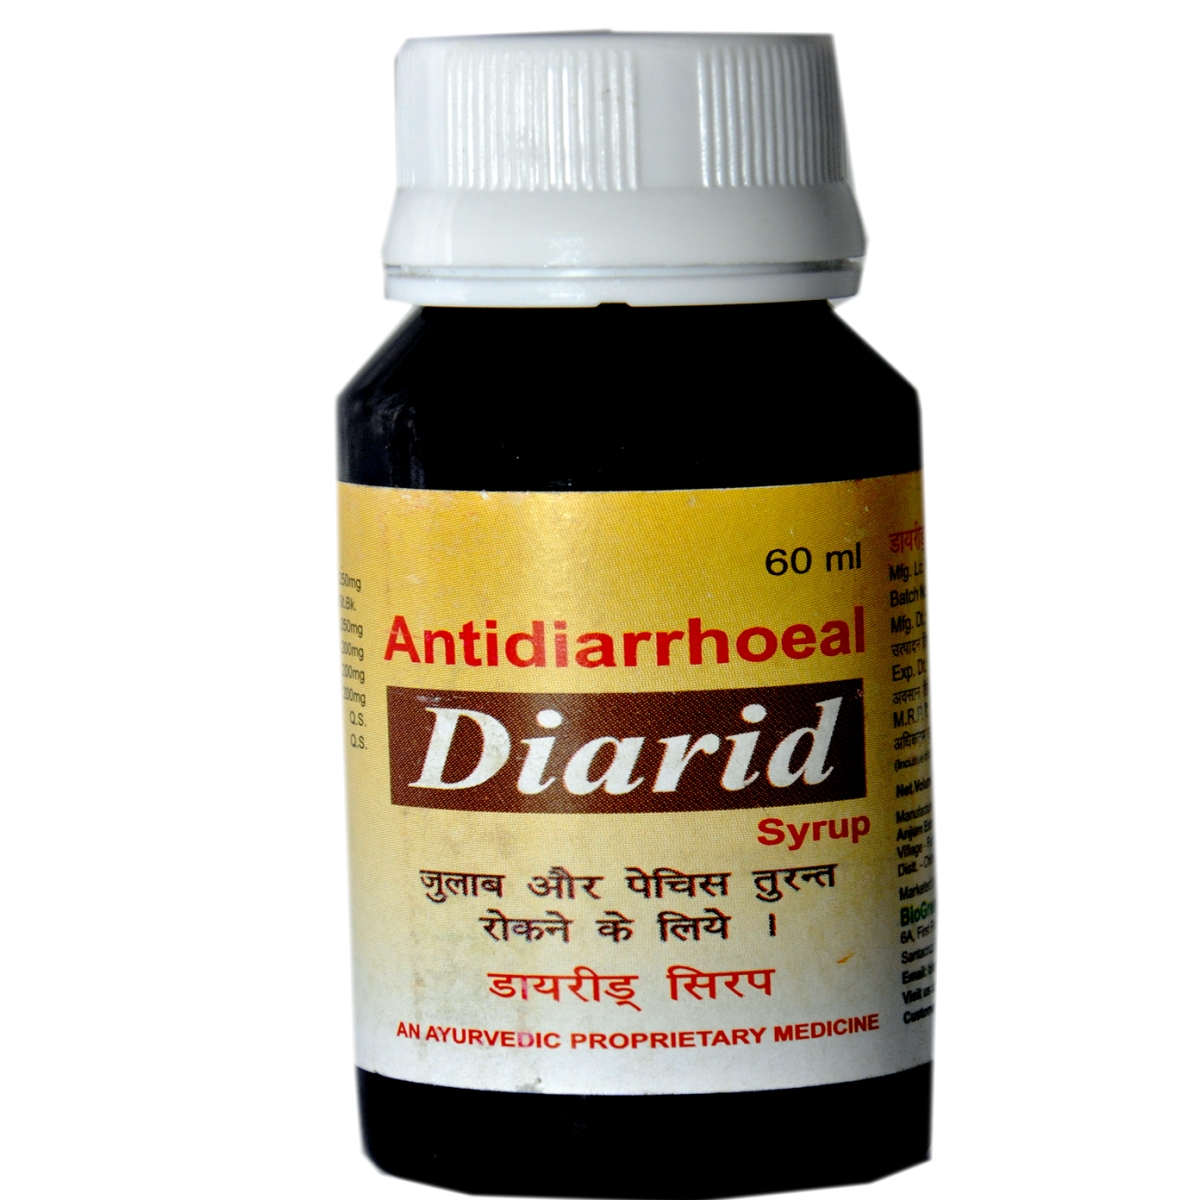 Diarid Syrup In Pithoragarh